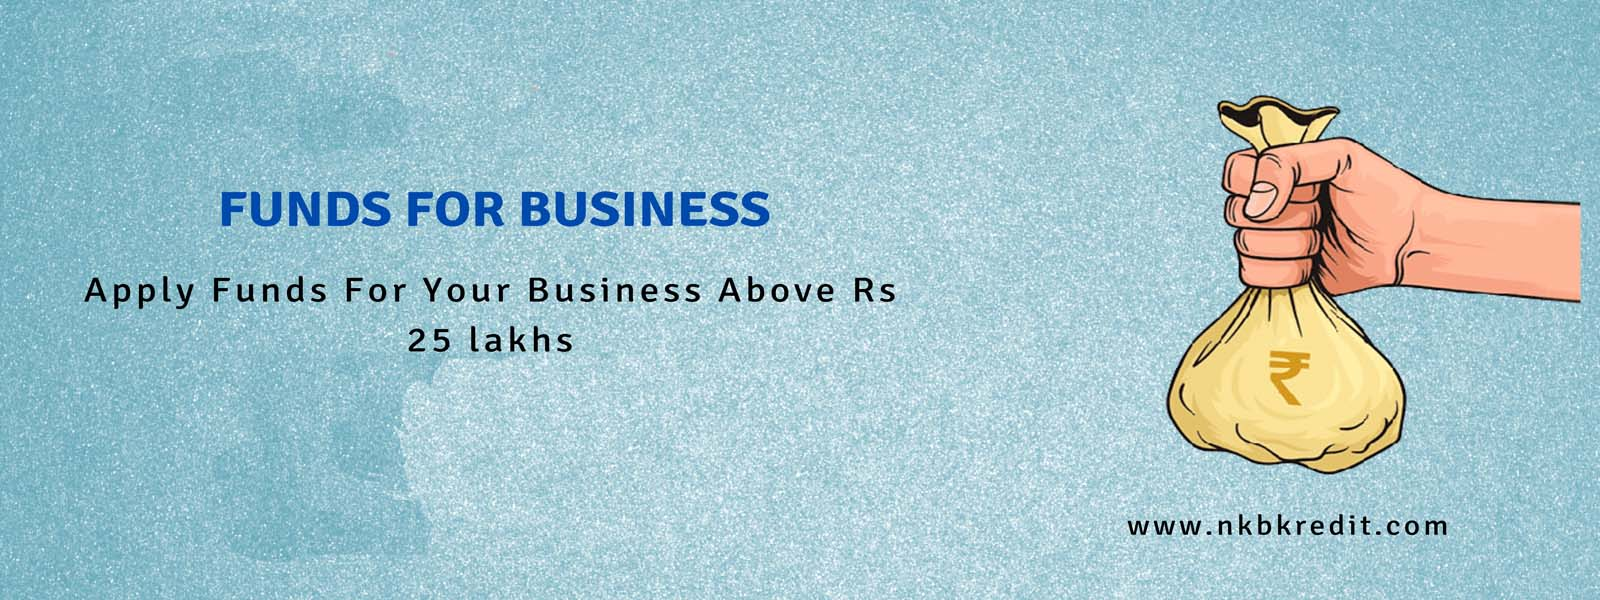 Apply for business funds